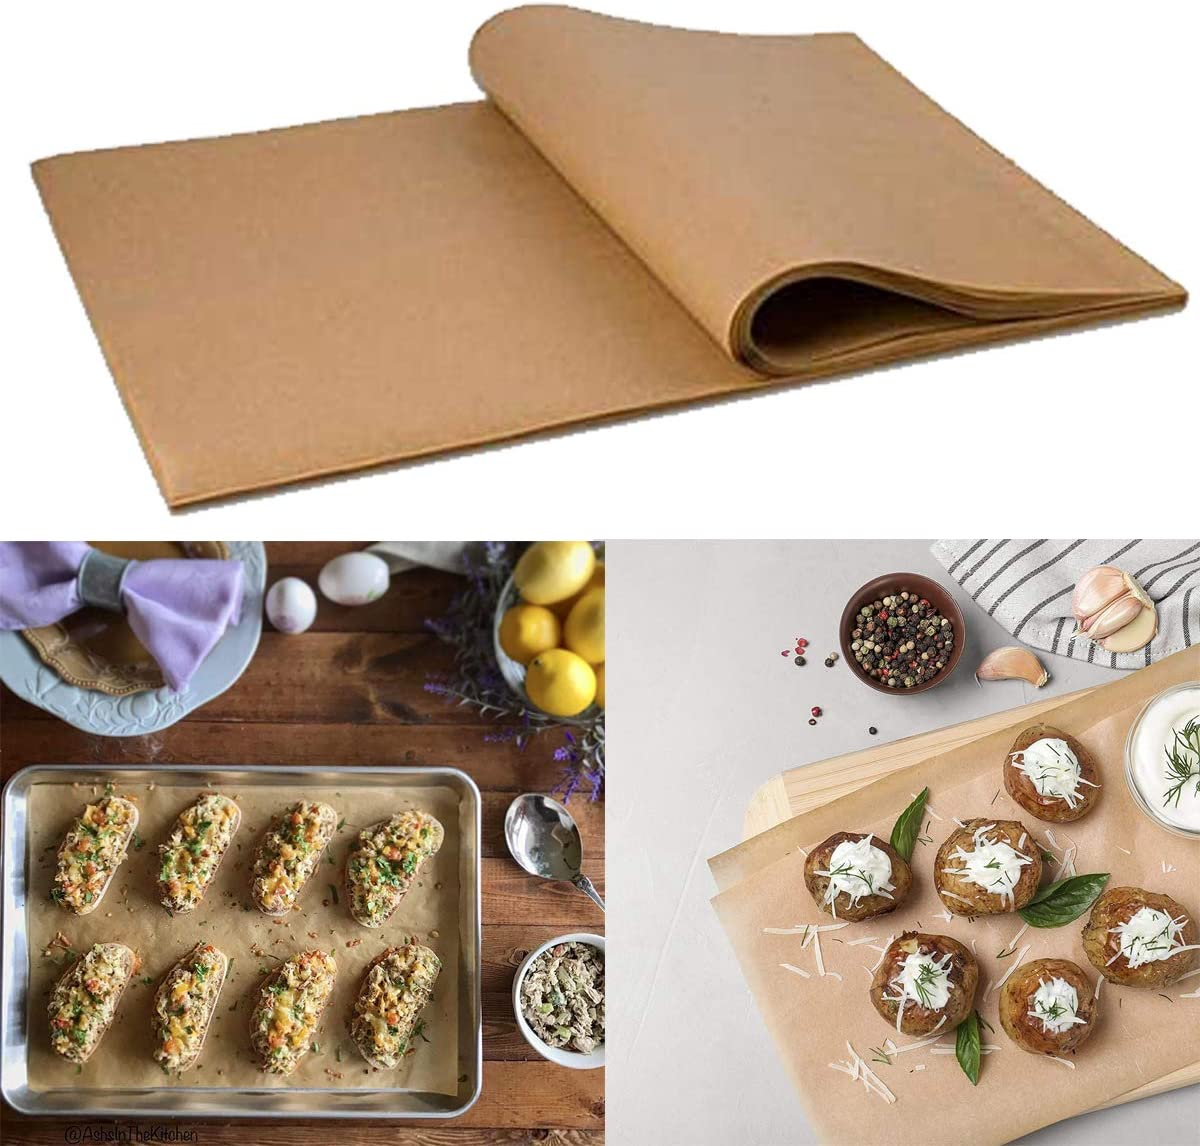 20 * 30cm 30 * 40cm Baking Parchments,Liwein 200 Sheets Unbleached Greaseproof Parchment Paper Sheets Dual-Sided Coating Siliconized Non-Stick Cooking Mats for Catering Plate Grill Toaster Oven